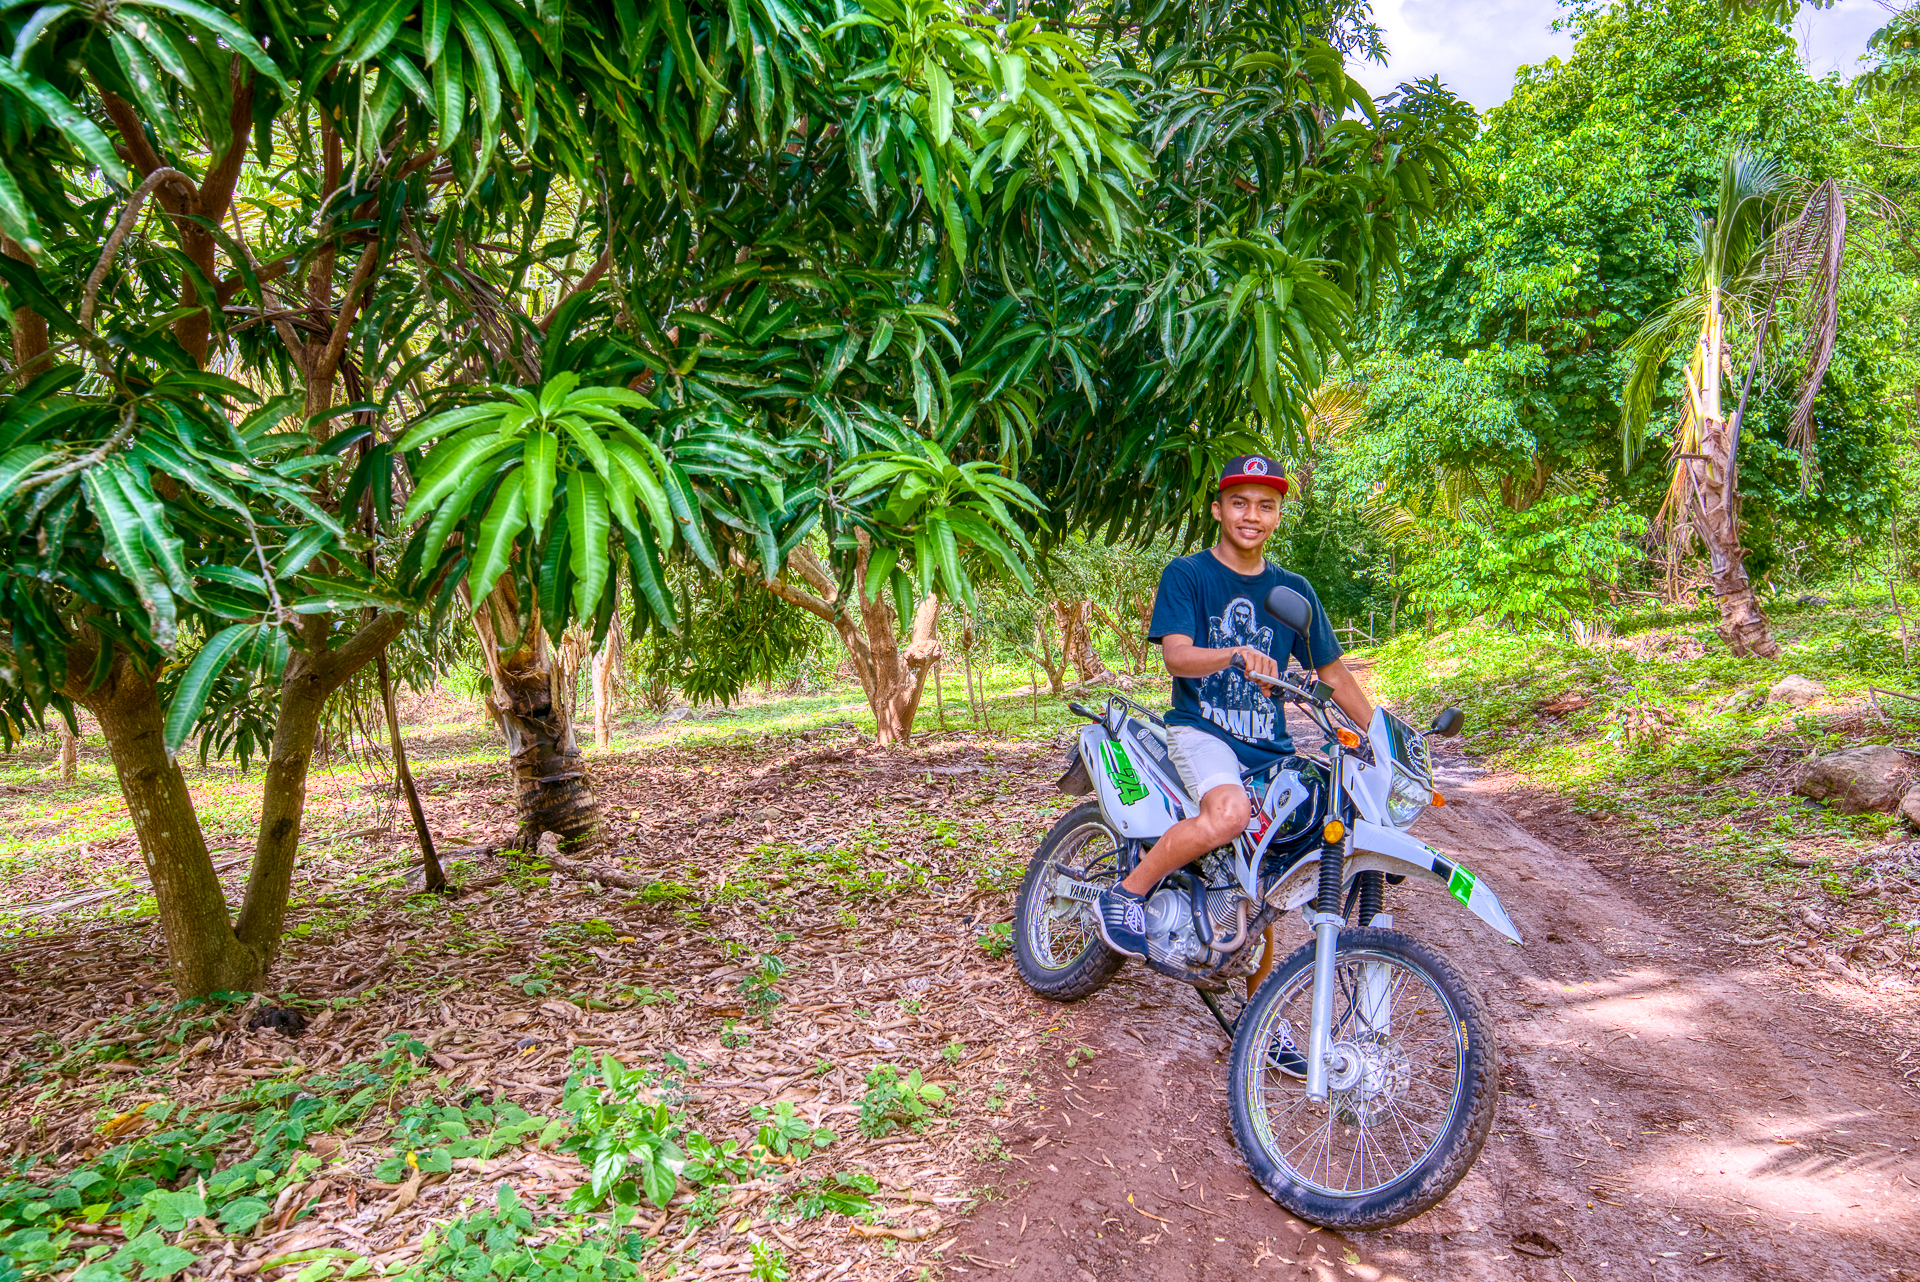 rent a motorbike to explore the island from Clandestino Tours delivered to Bambouseraie Jungle Cabins